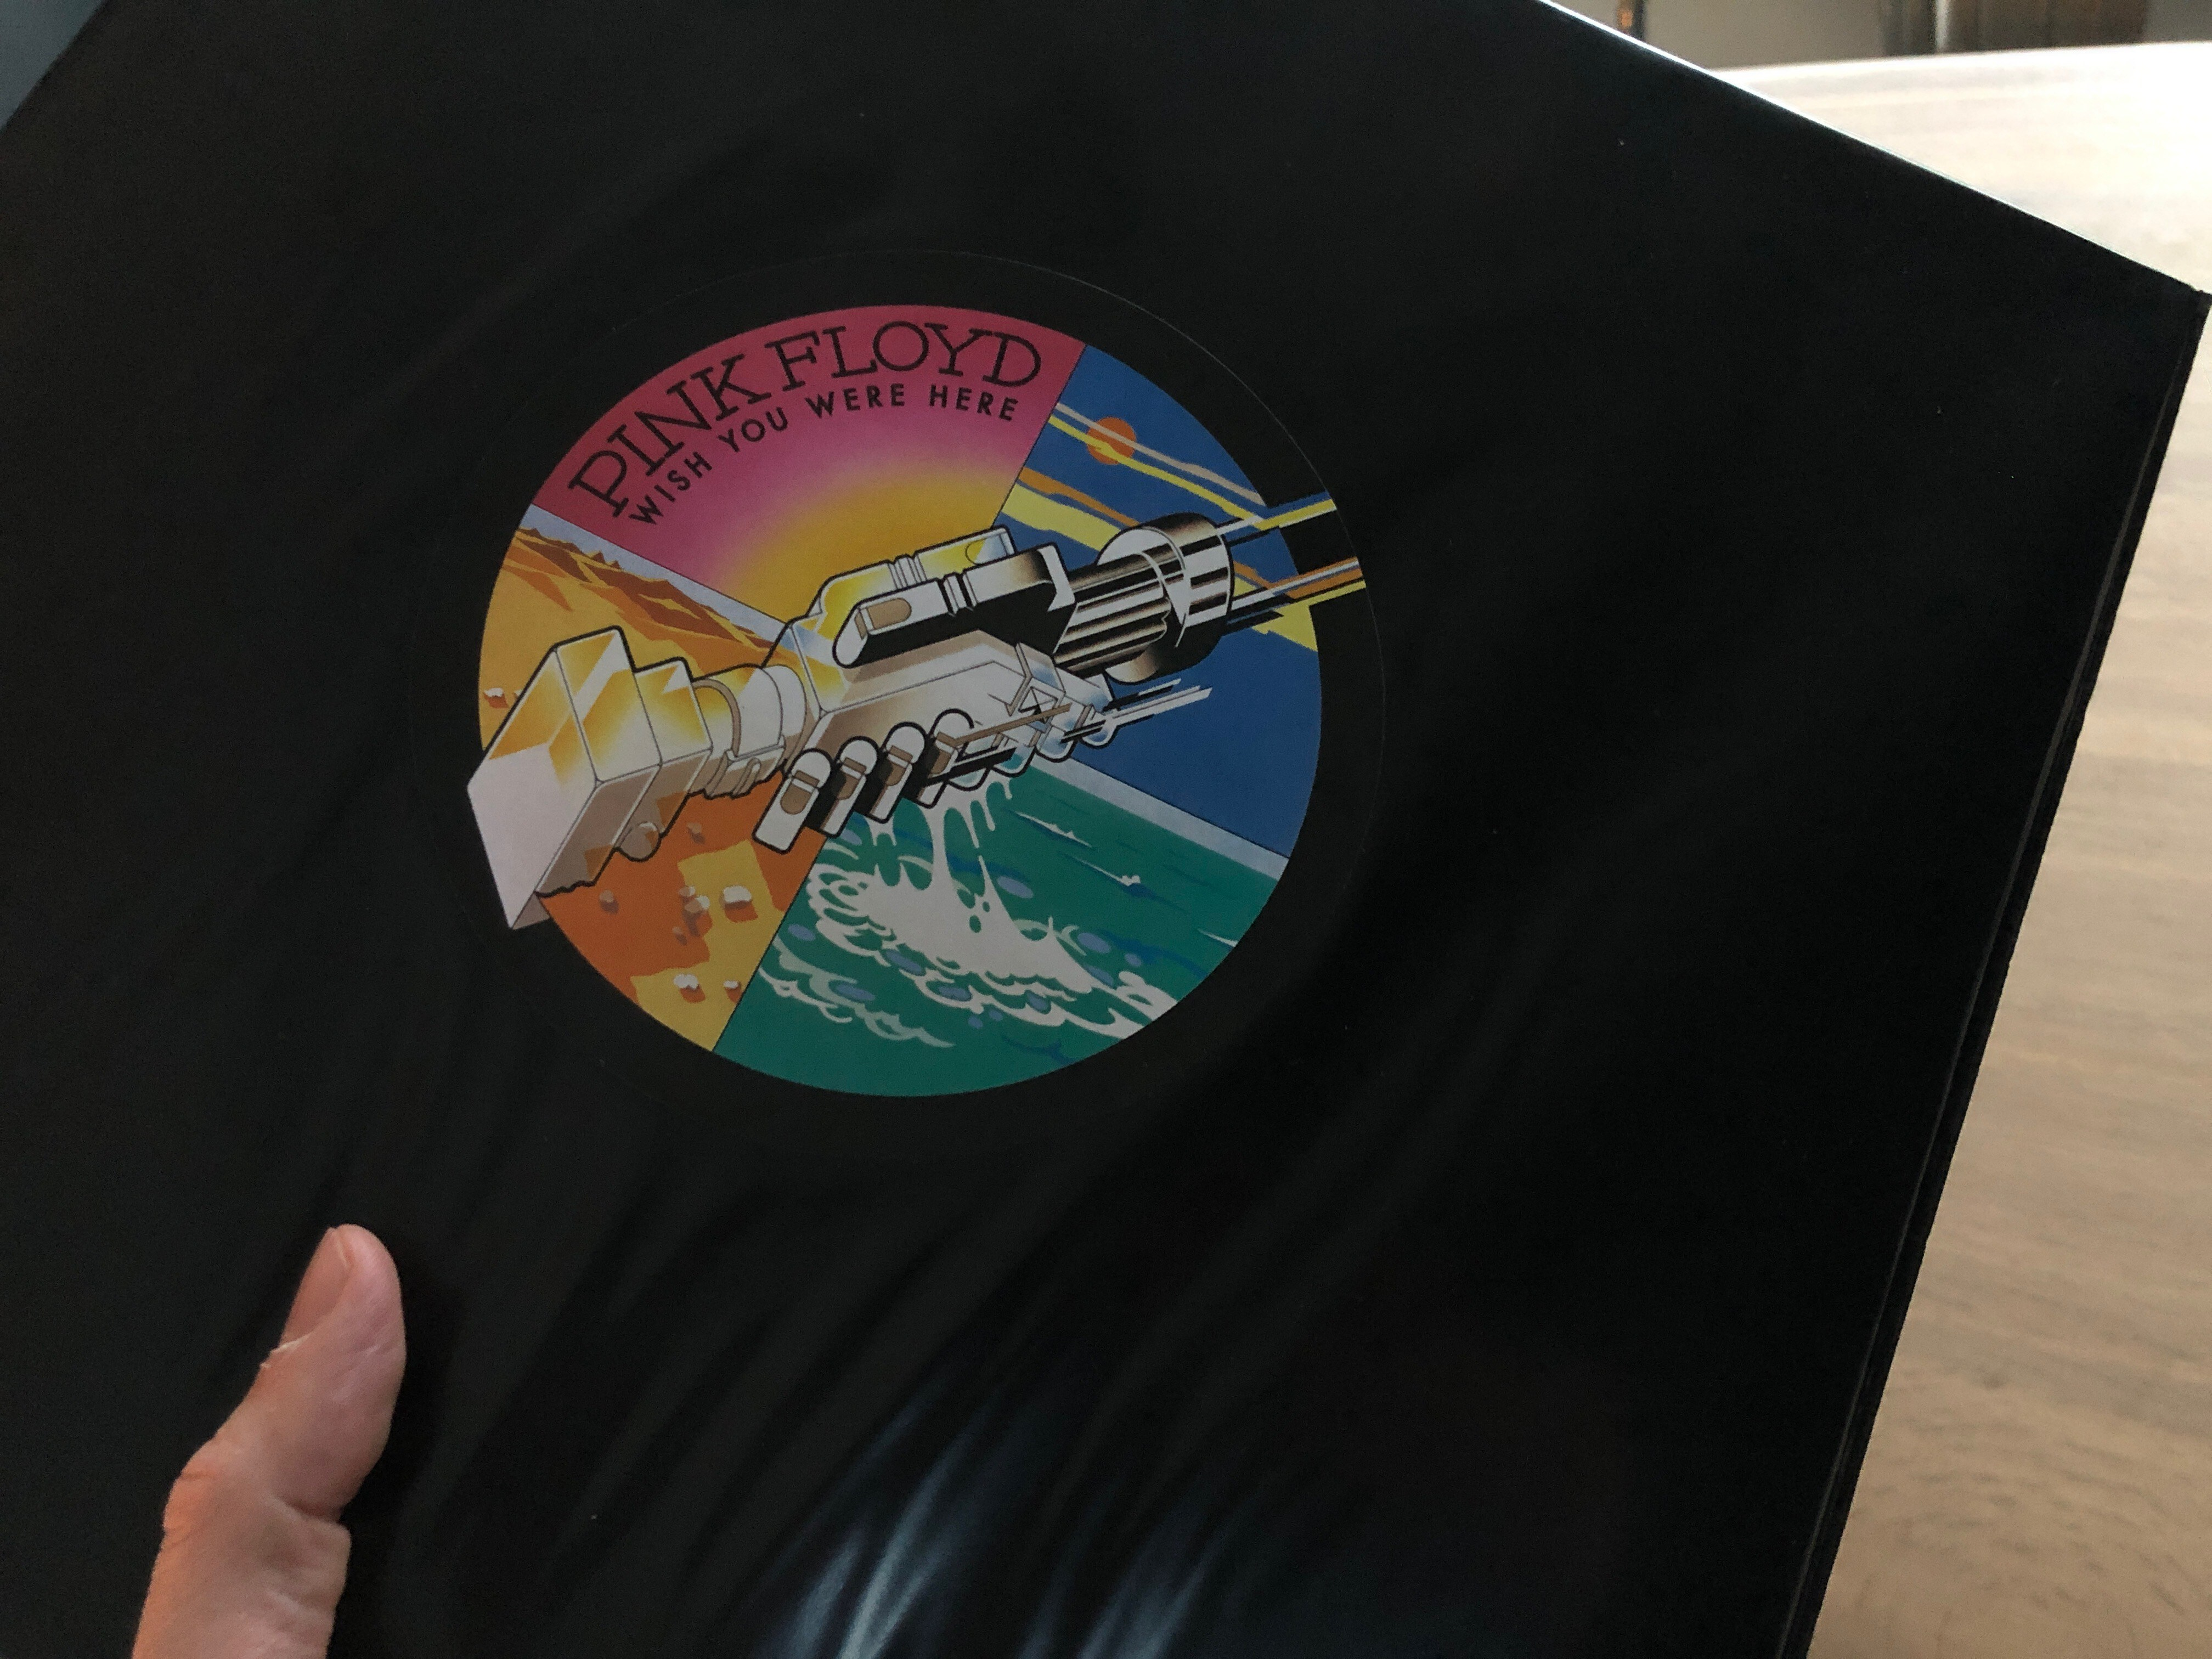 Photo of Pink Floyd album Wish You Were Here.